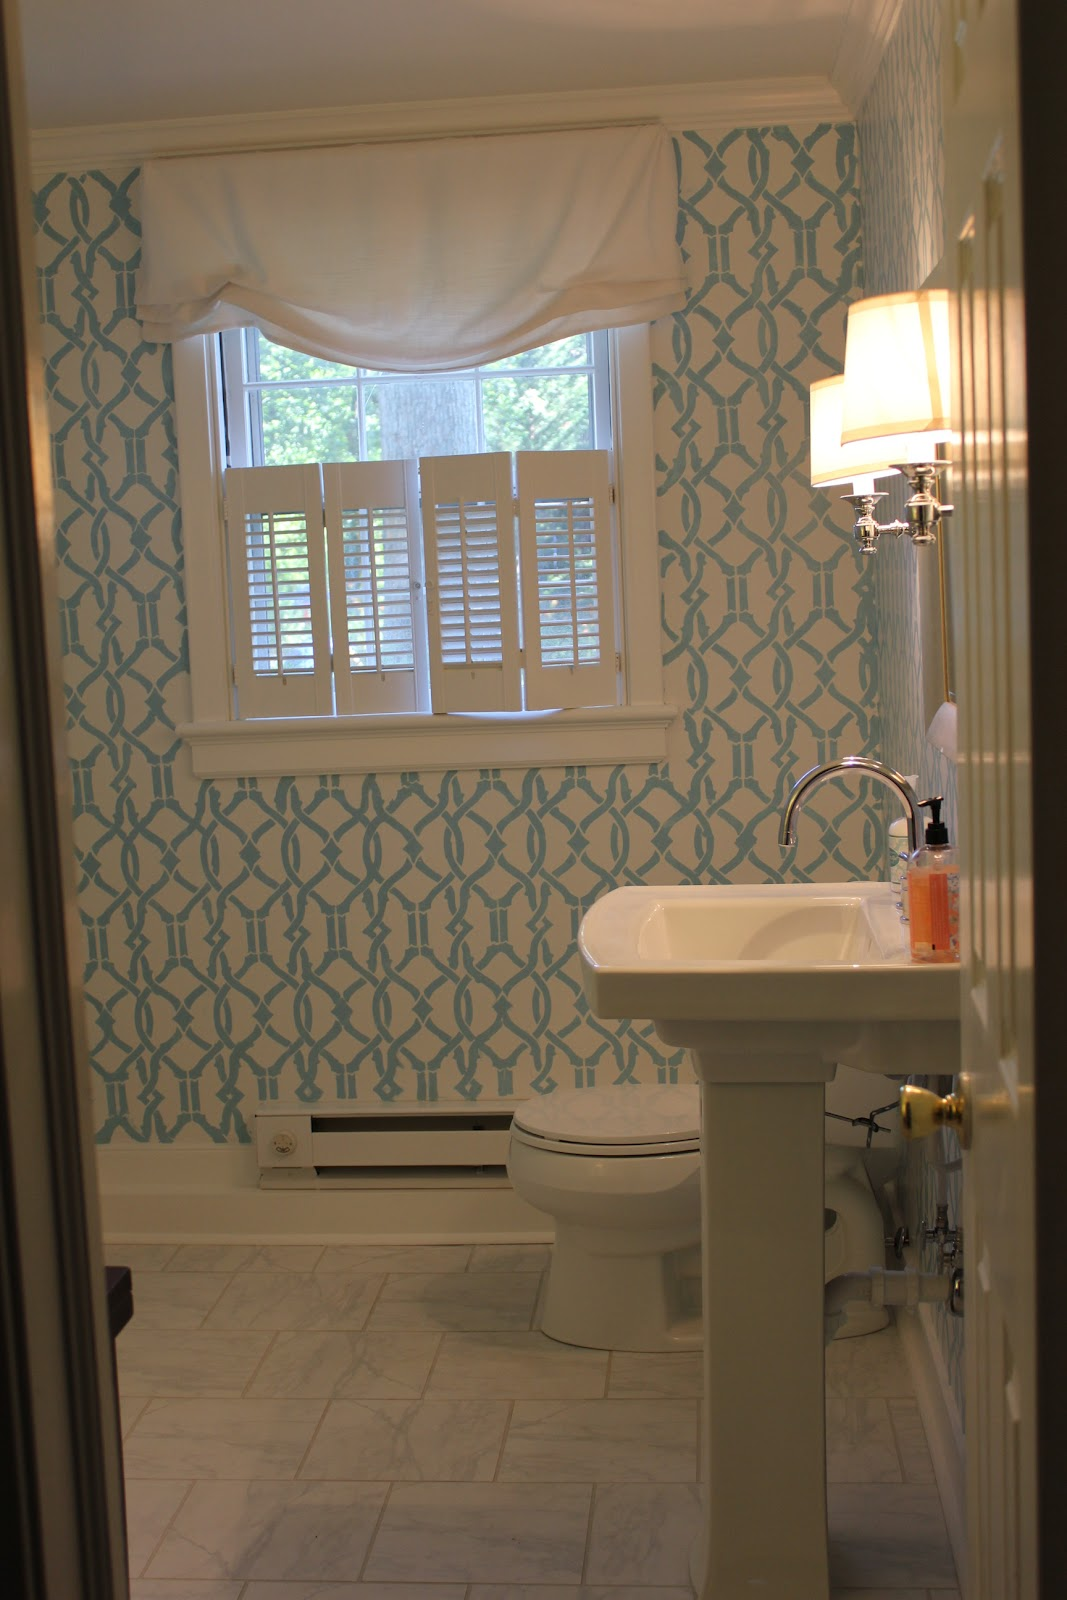 Westhampton DIY: How to Stencil a Room / Powder Room Remodel